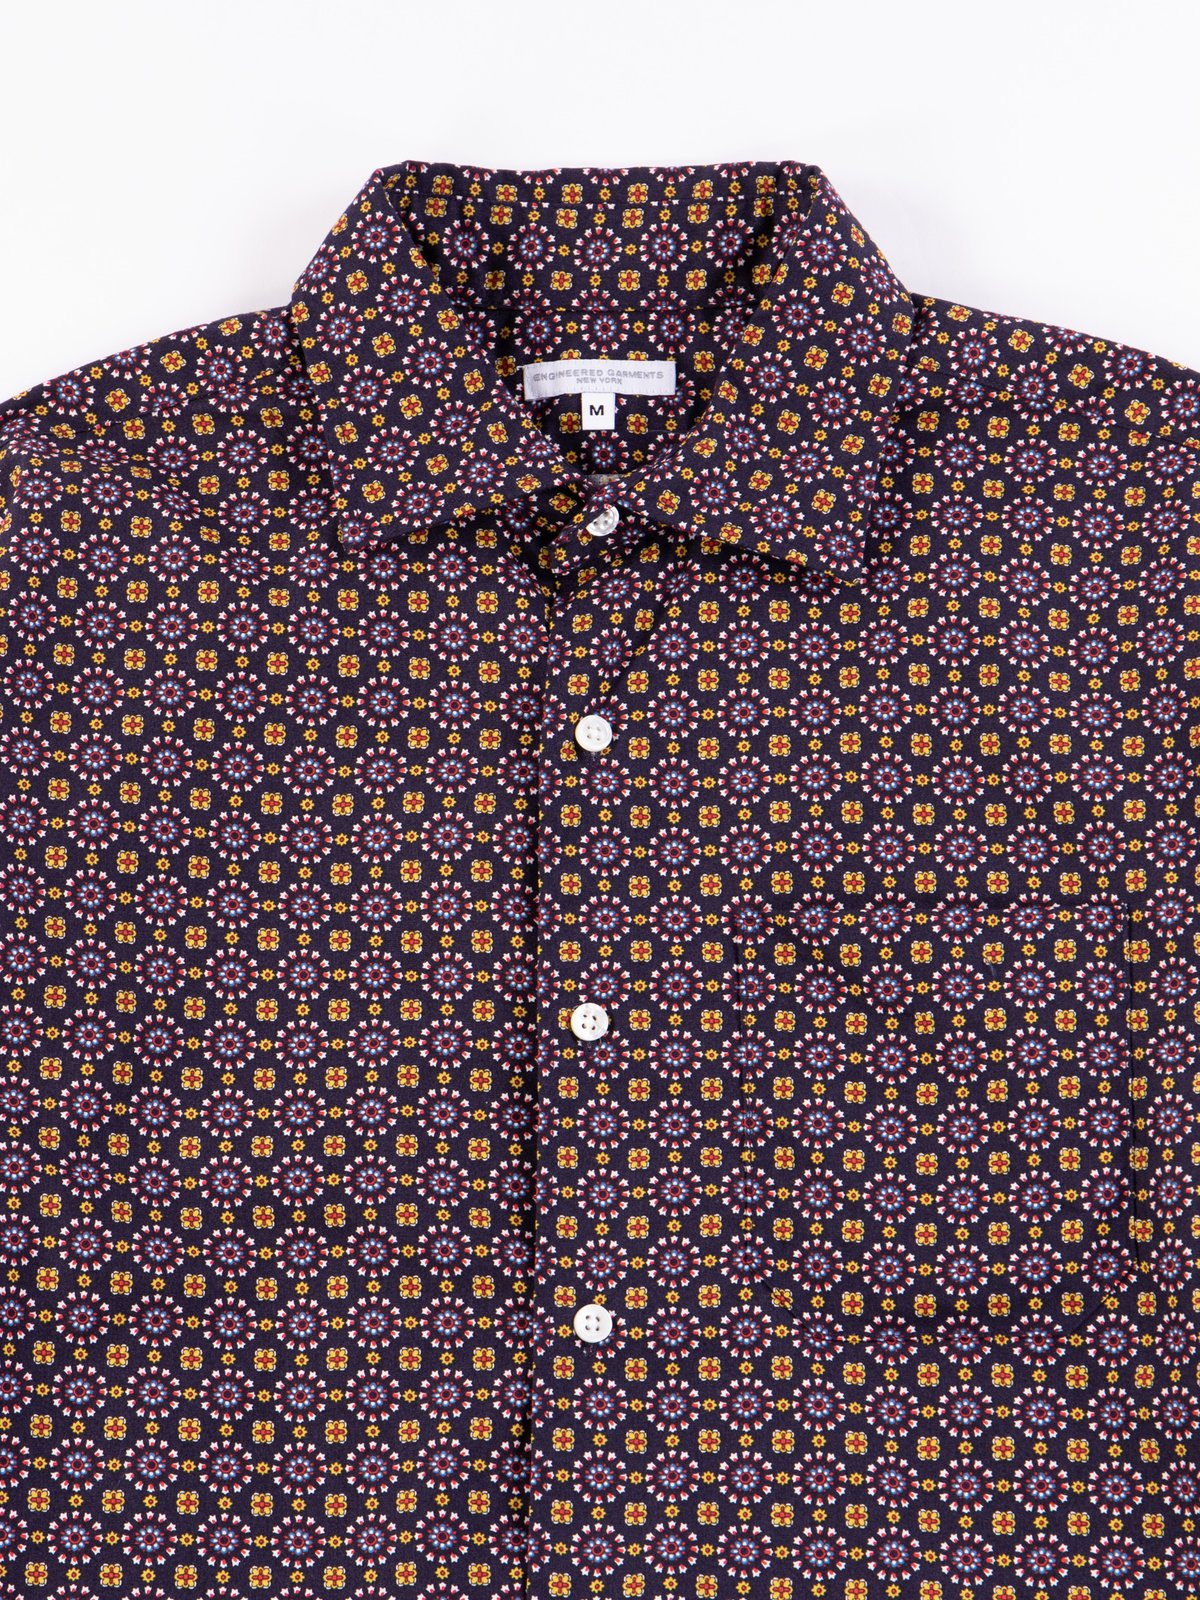 Navy Floral Foulard Print Spread Collar Shirt - Image 4